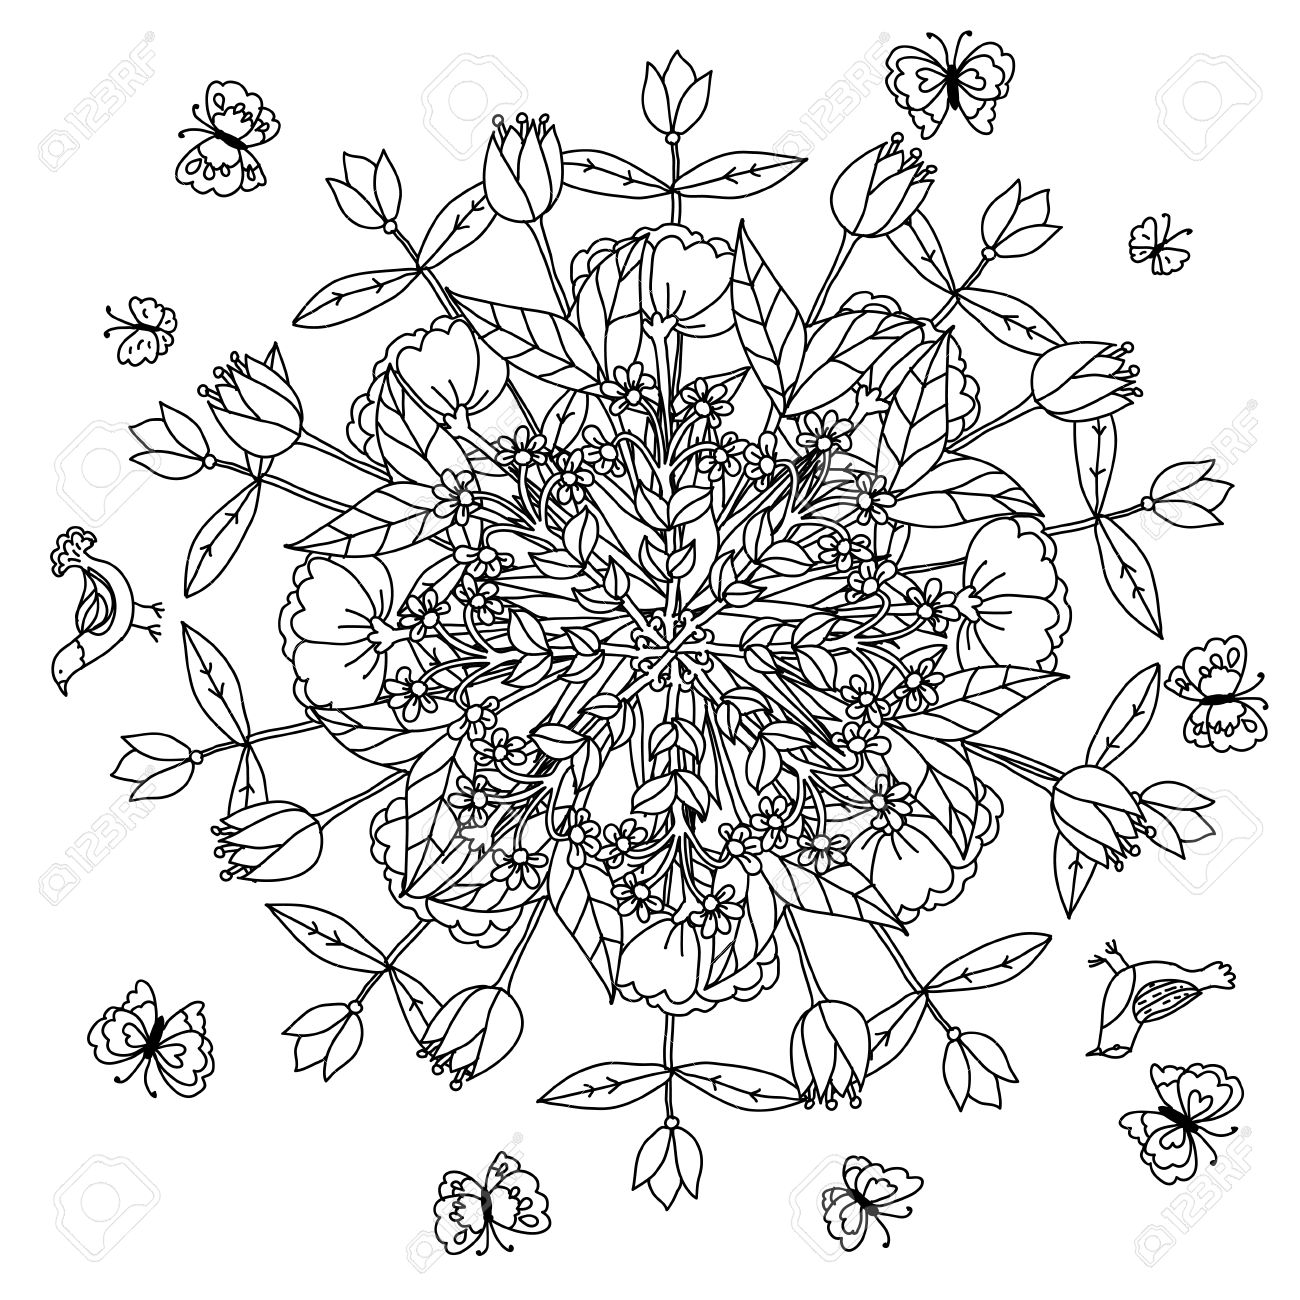 1300x1300 Mandala Shaped Contoured Flowers, Leaves And Birds For Adult